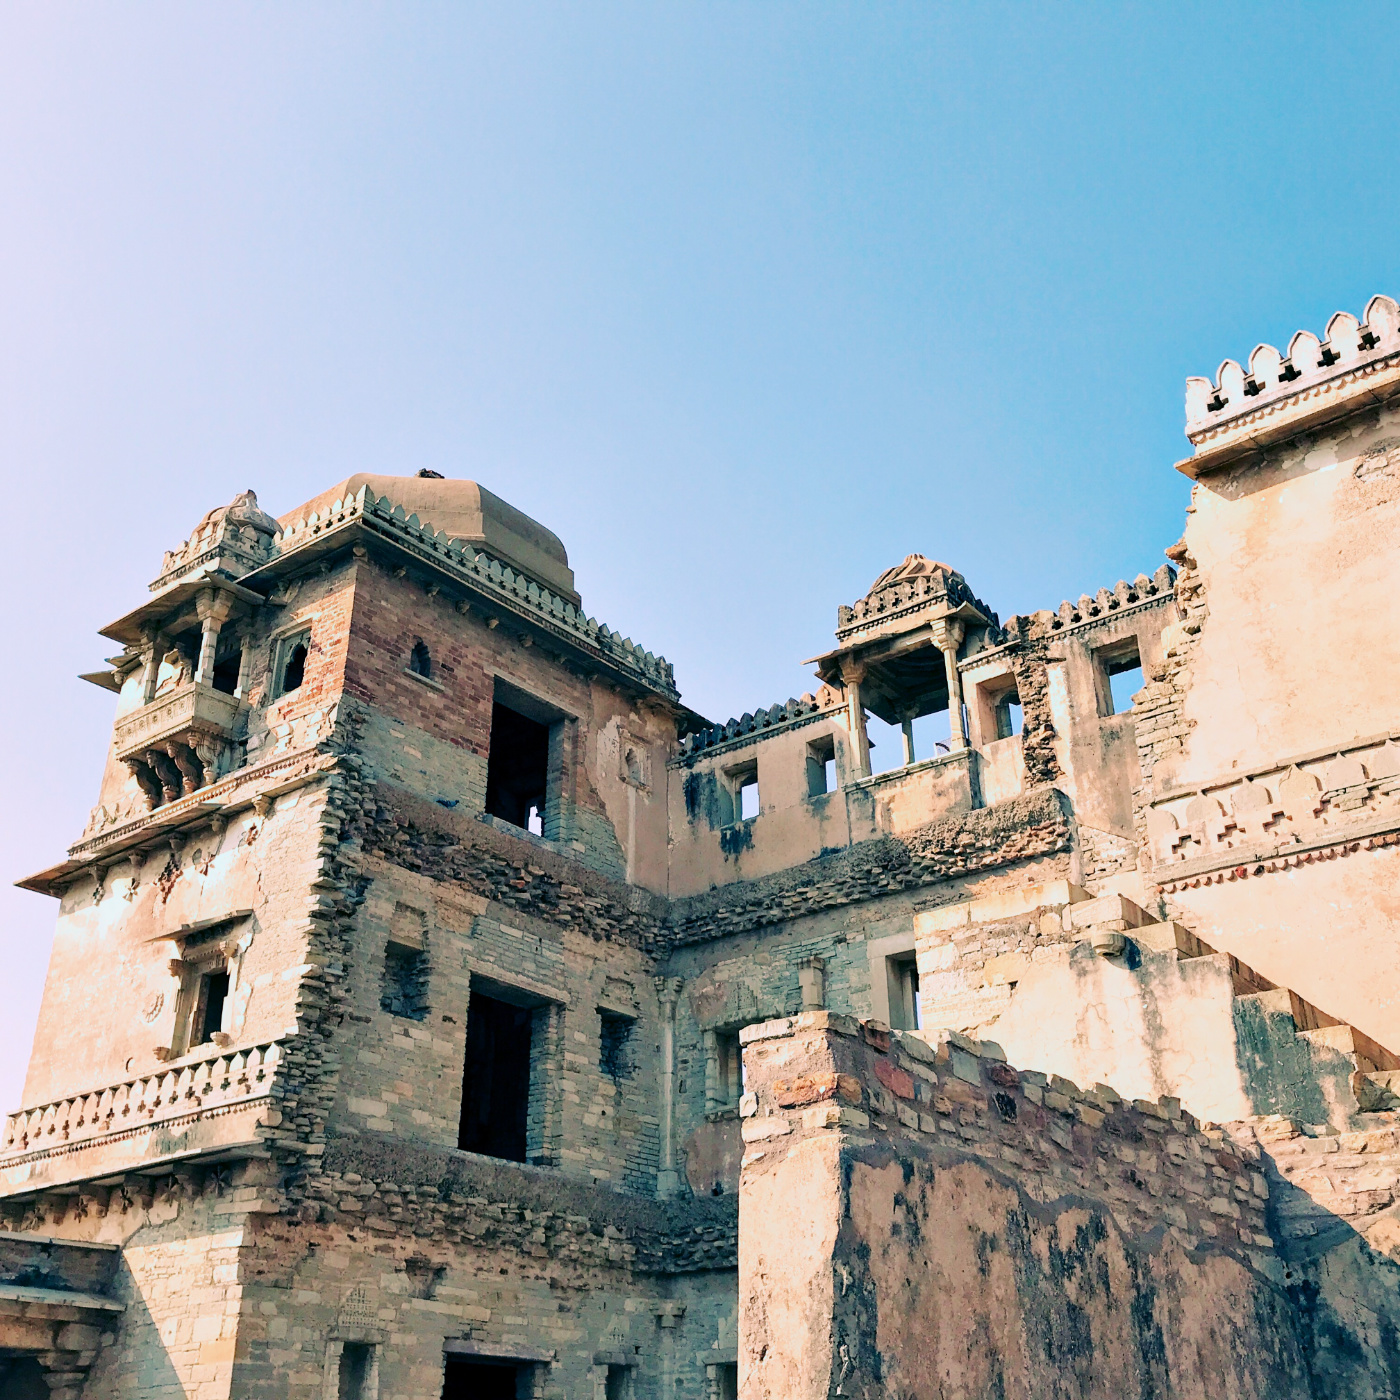 690-India-Chittorgarh